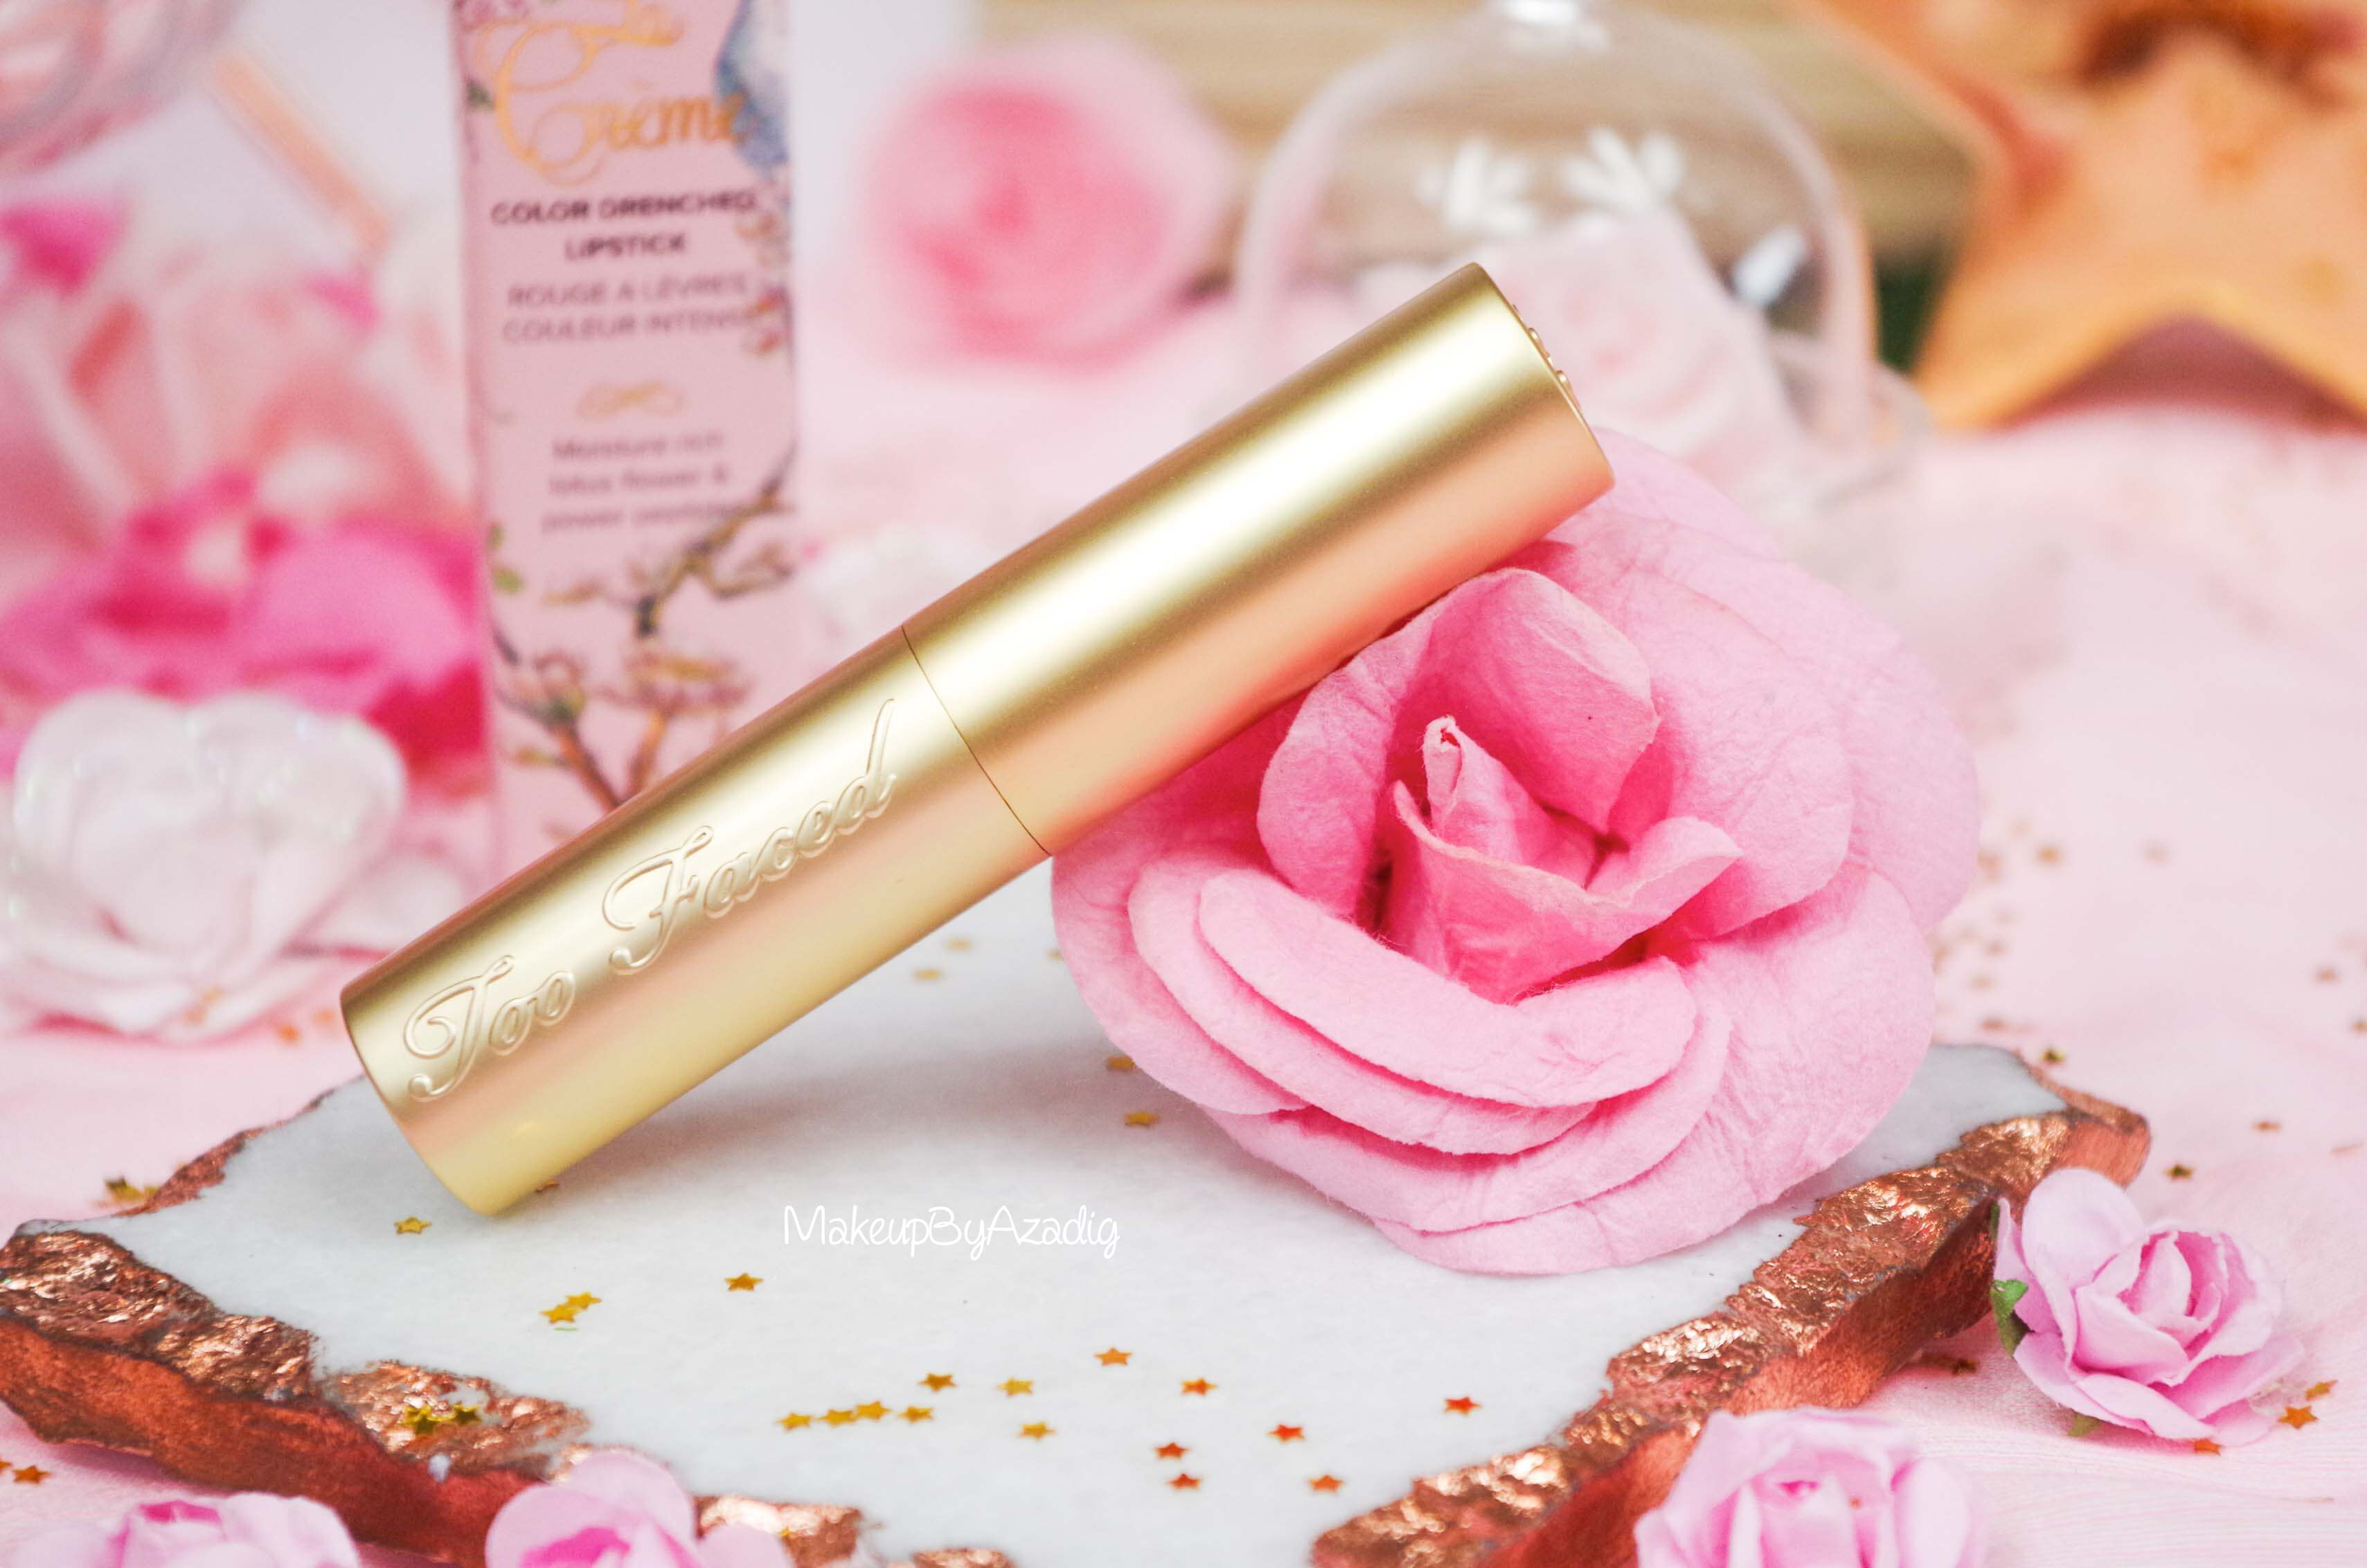 rouge-levres-creme-too-faced-unicorn-tears-magique-makeupbyazadig-swatch-avis-prix-revue-sephora-rose